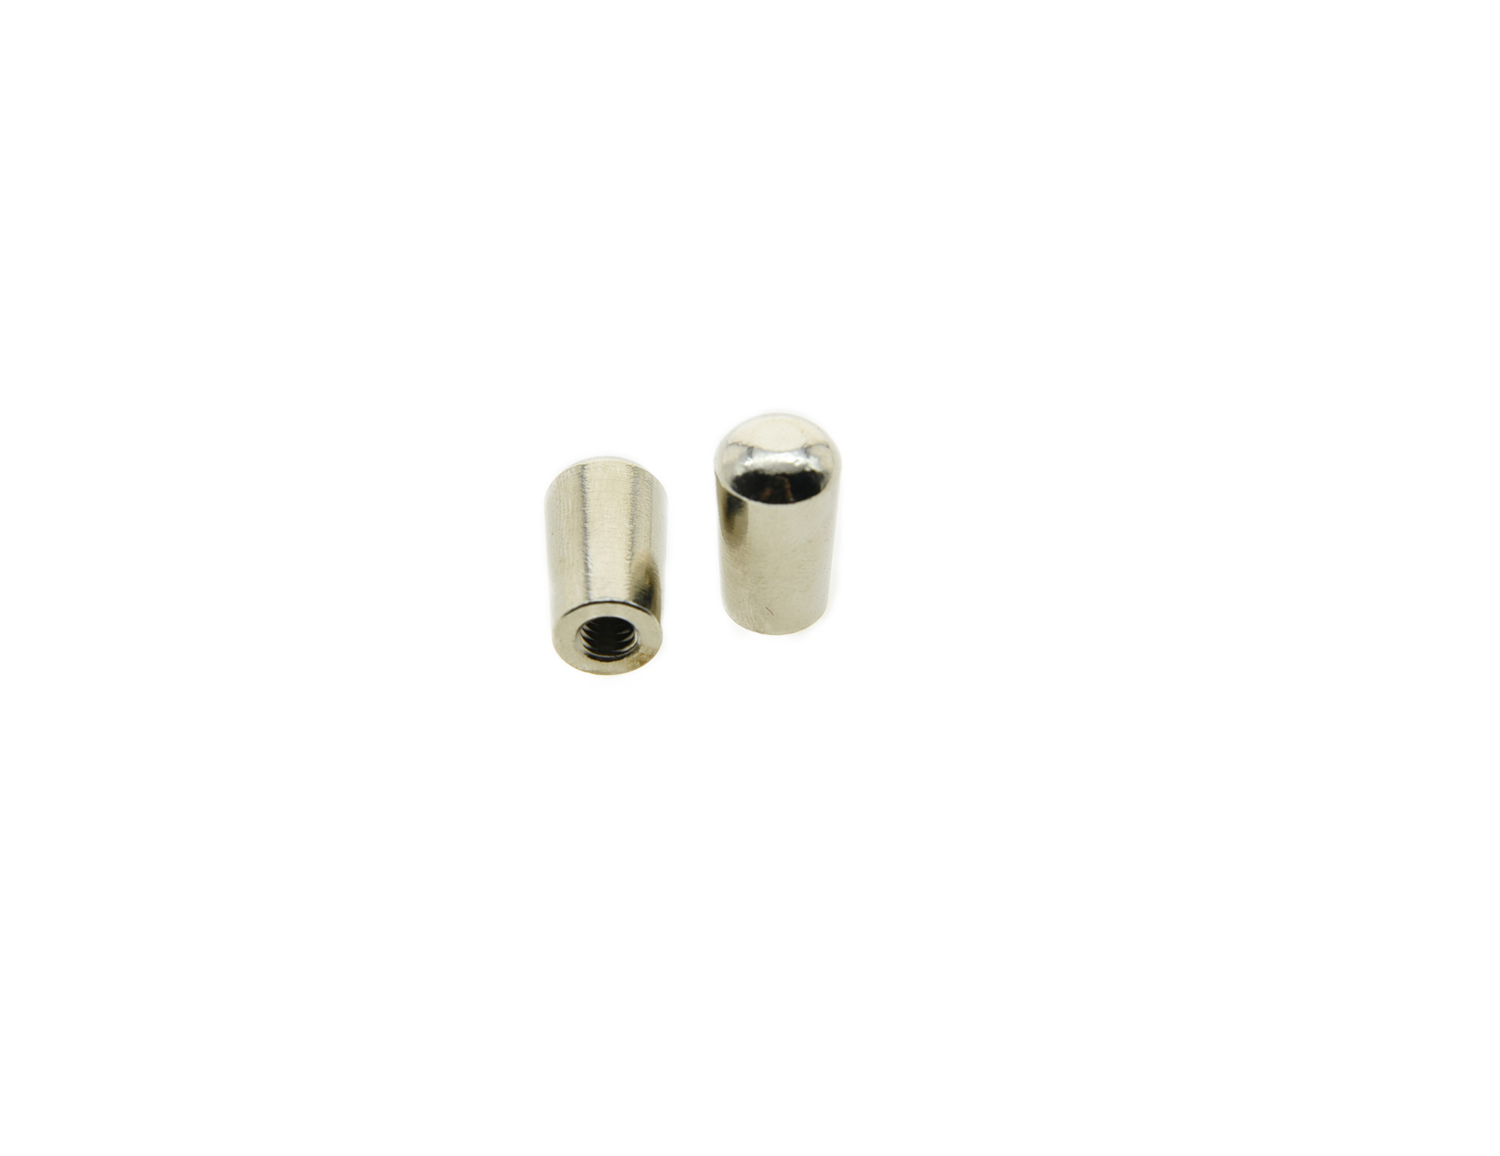 1xM3.5 1xM4 METAL LP Guitar Toggle Switch Tip Nickel 3 Way Switch Knob for LP zebra metal and rubber 3 way switch electric guitar pickup toggle switch selector toggle switch with tip knob for guitar parts